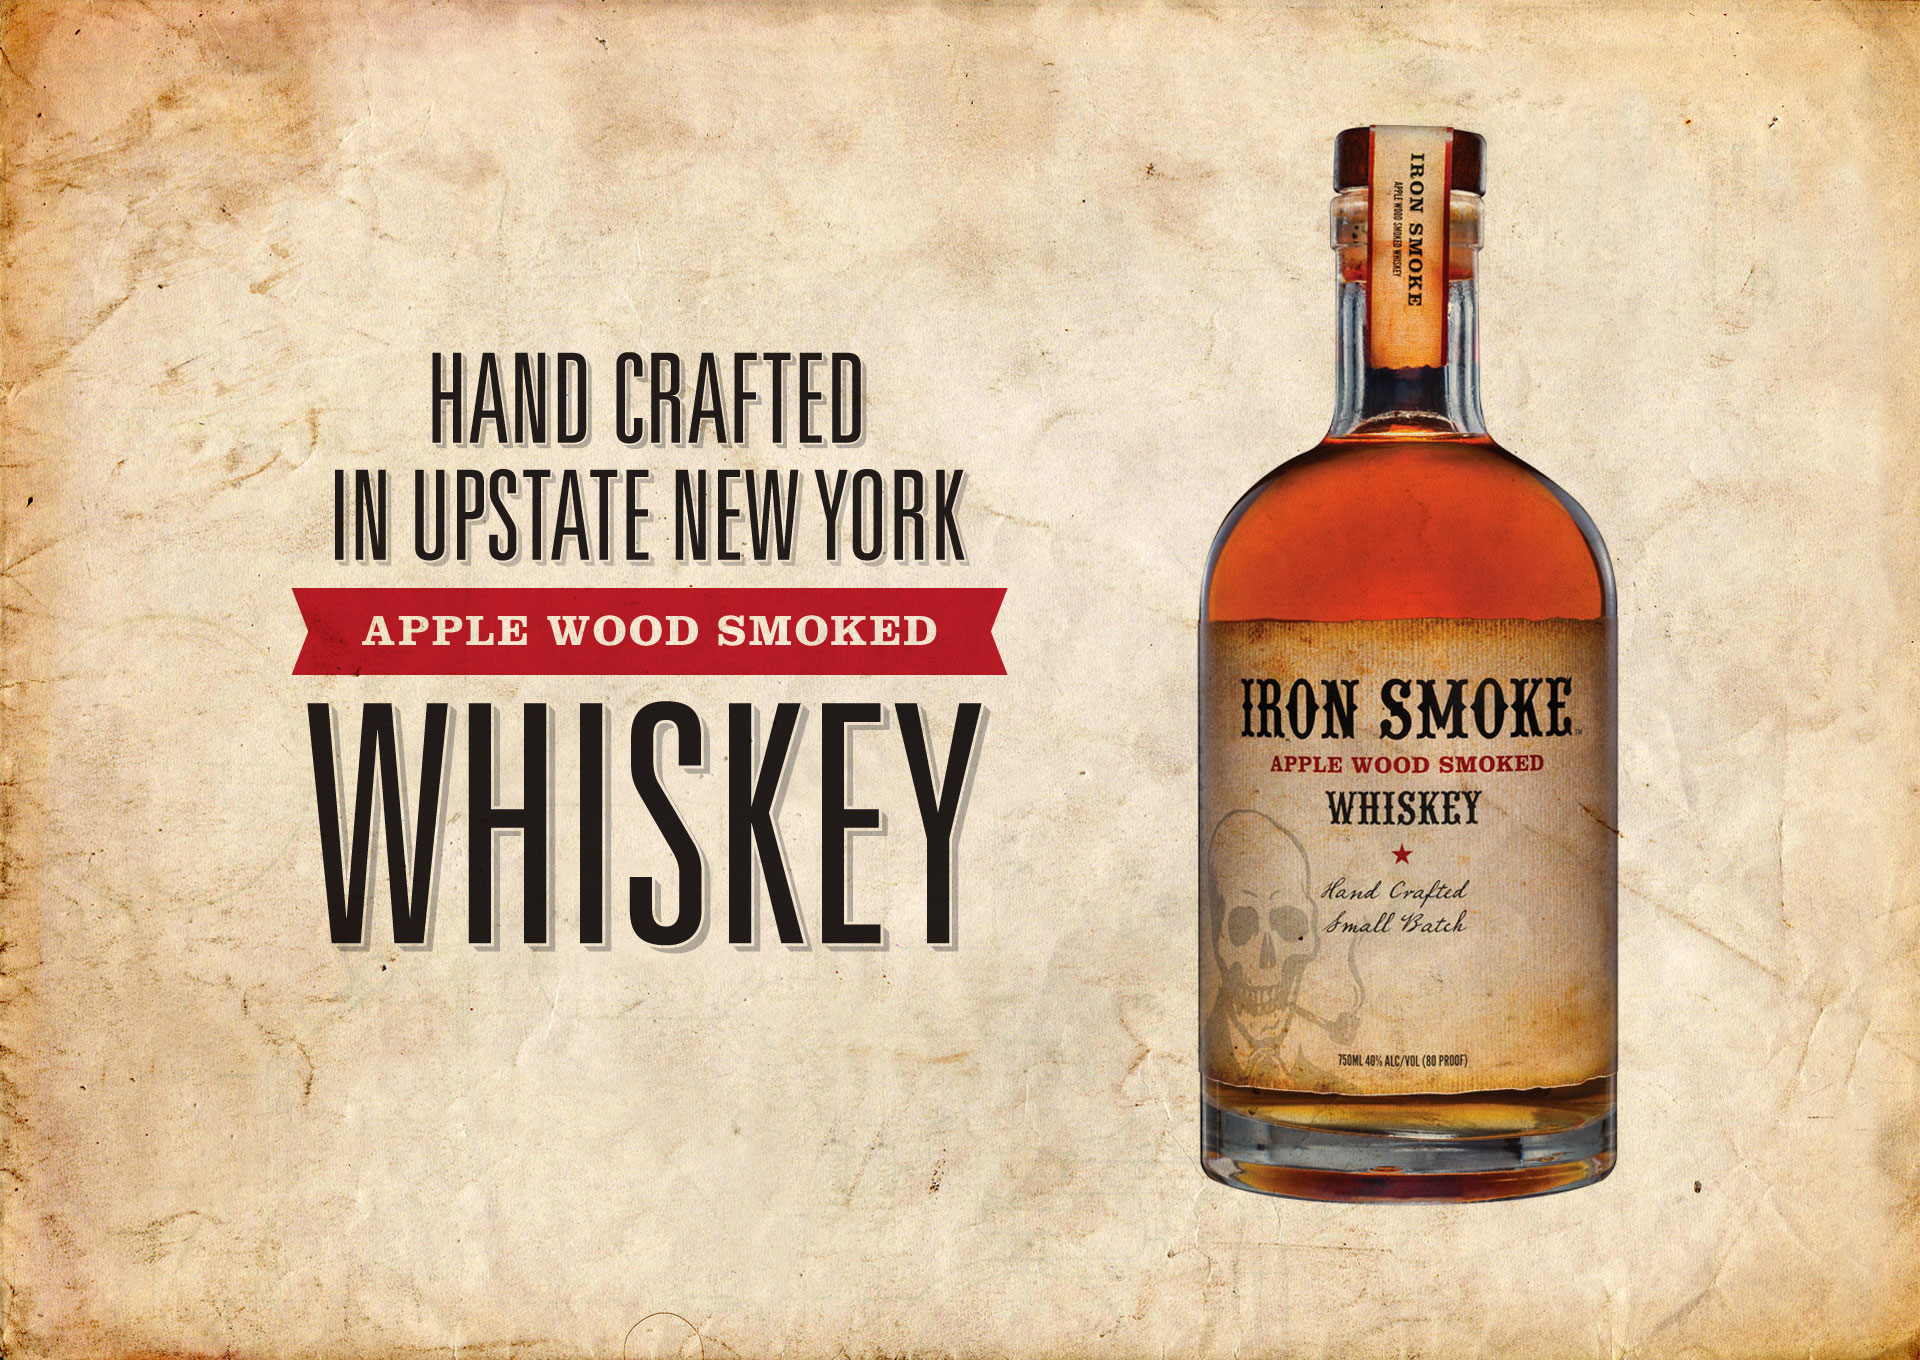 Iron Smoke Whiskey Bottle